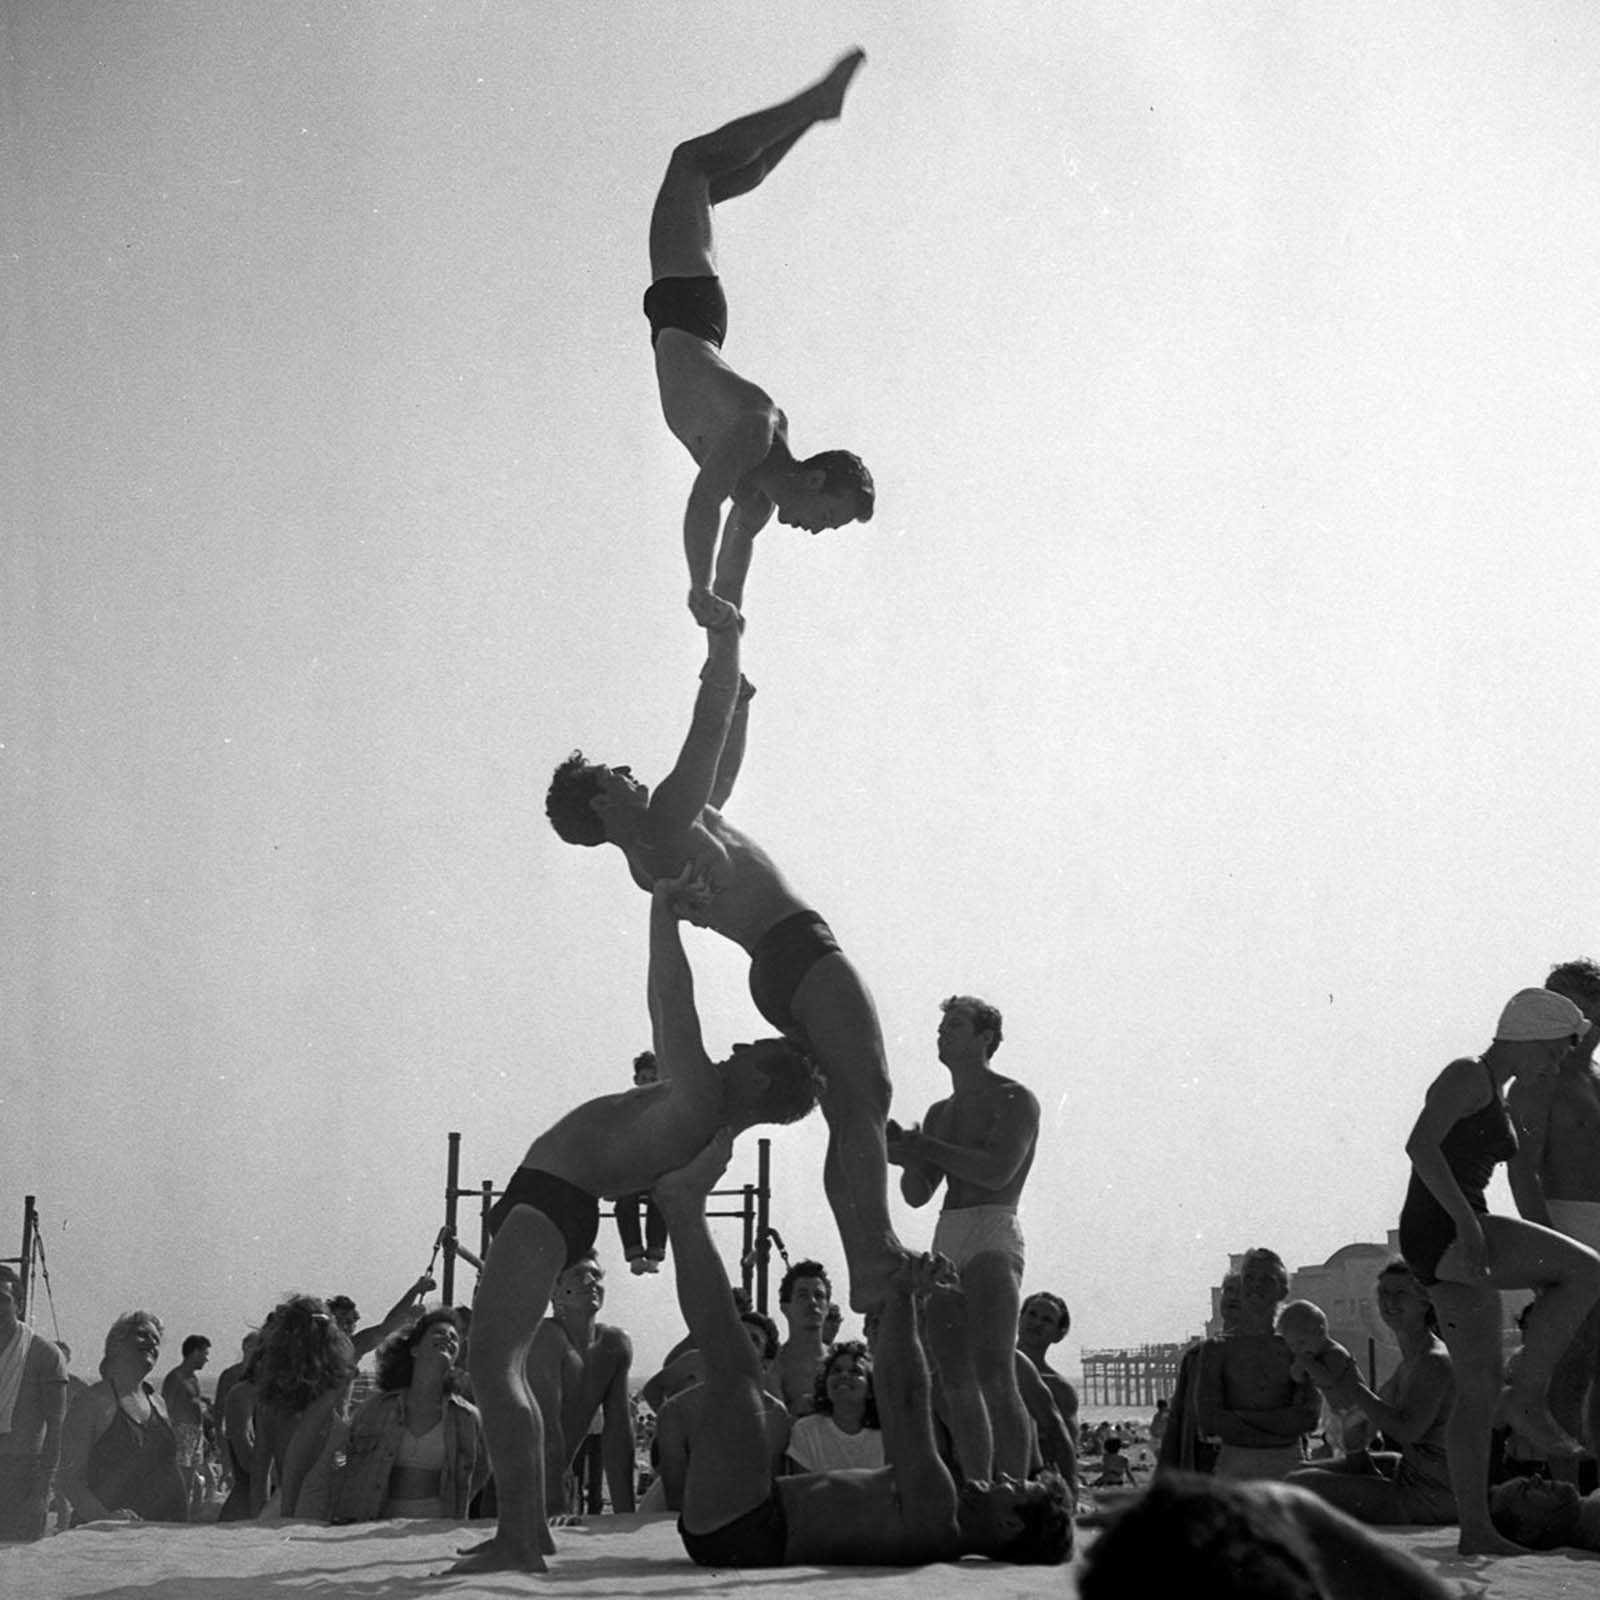 Male and female gymnasts regularly put on public shows, dazzling beachgoers with their displays of strength and balance.